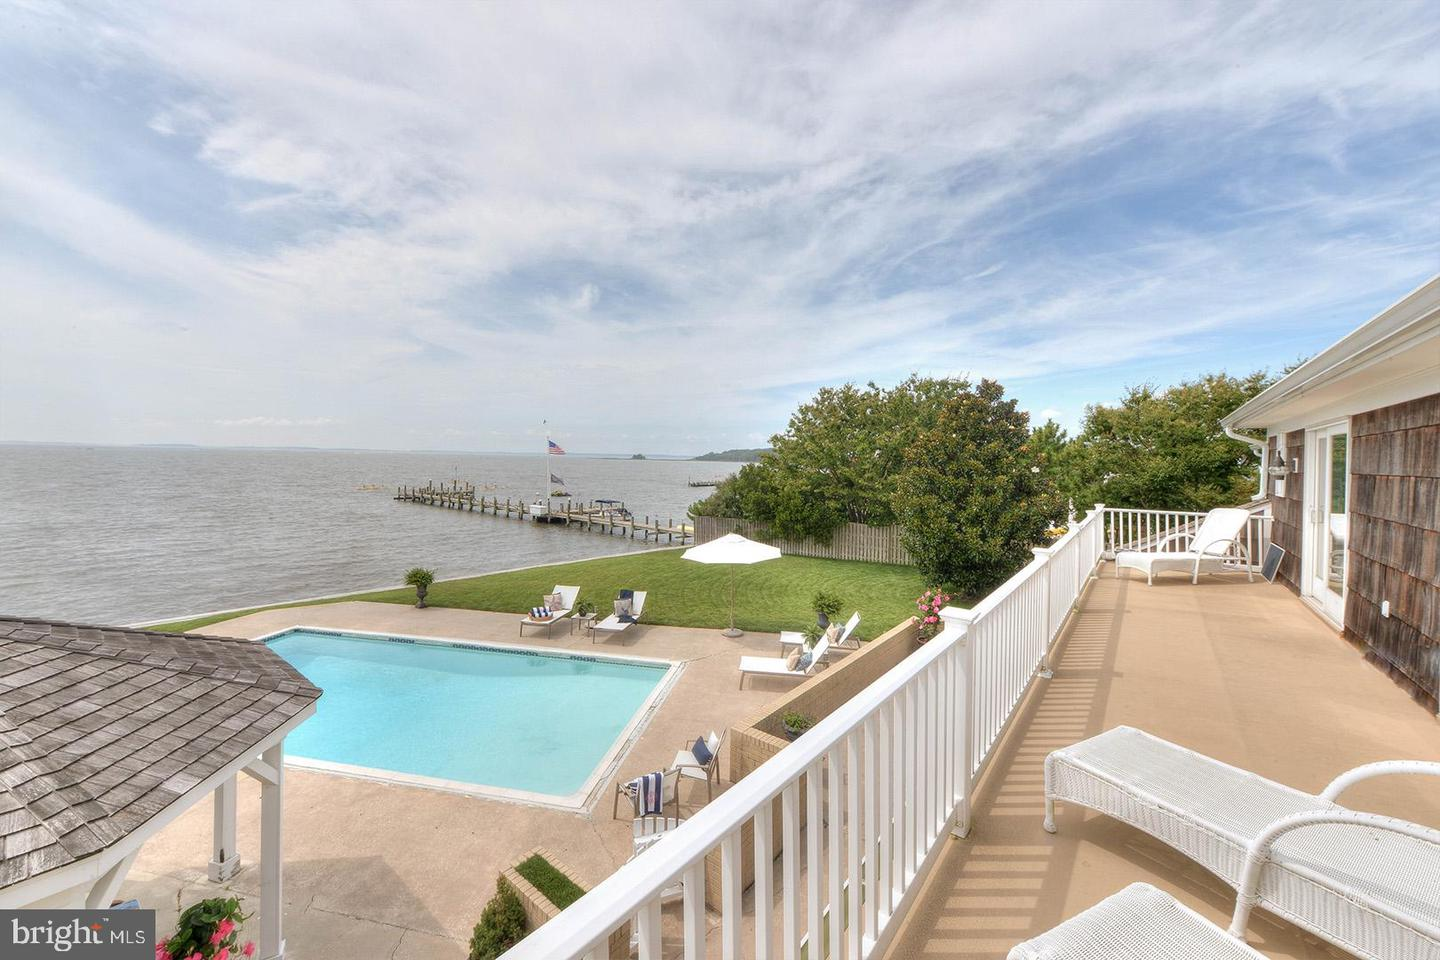 DESU146280-301986130962-2019-10-25-13-18-17 316 Salisbury St | Rehoboth Beach, DE Real Estate For Sale | MLS# Desu146280  - Rehoboth Beach Real Estate - Bryce Lingo and Shaun Tull REALTORS, Rehoboth Beach, Delaware